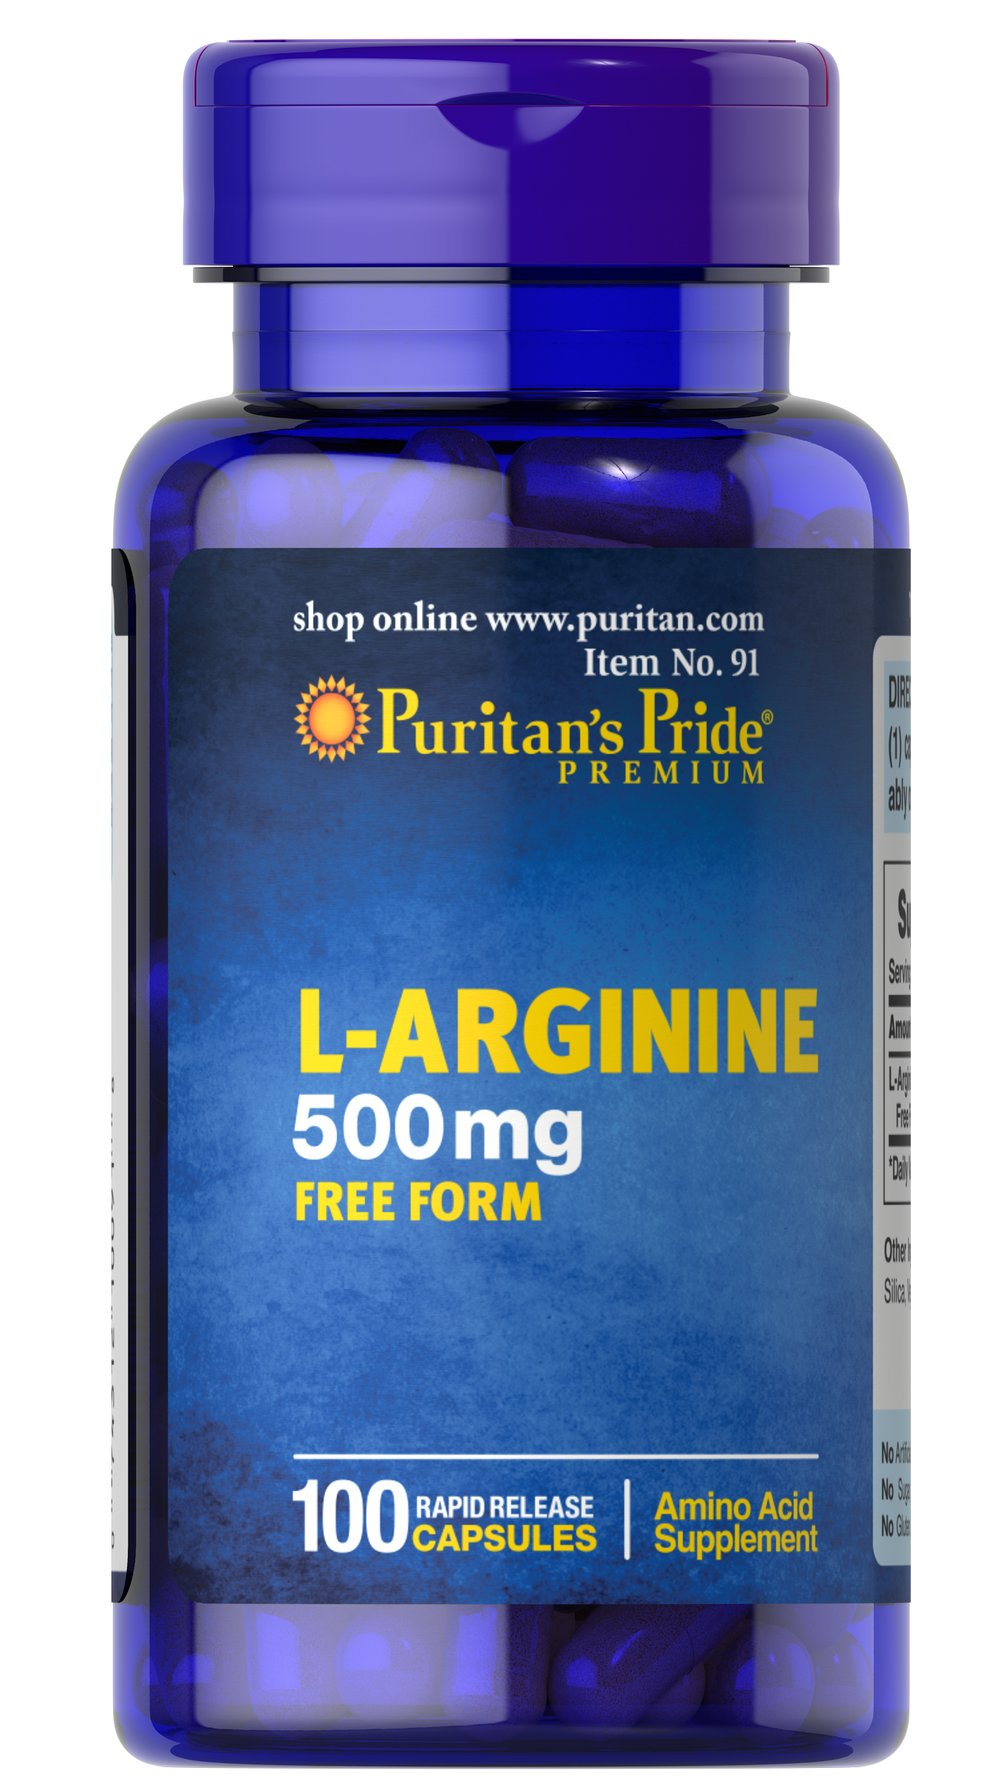 L-Arginine 500 mg <p>Arginine is one of 20 amino acids, the building blocks of protein.** Arginine can  serve as a source of energy, and is involved in various pathways throughout the body.** Arginine supports the effect of exercise and is one of the most important amino acids involved in immune function.** Adults can take one caplet daily. </p> 100 Capsules 500 mg $15.99